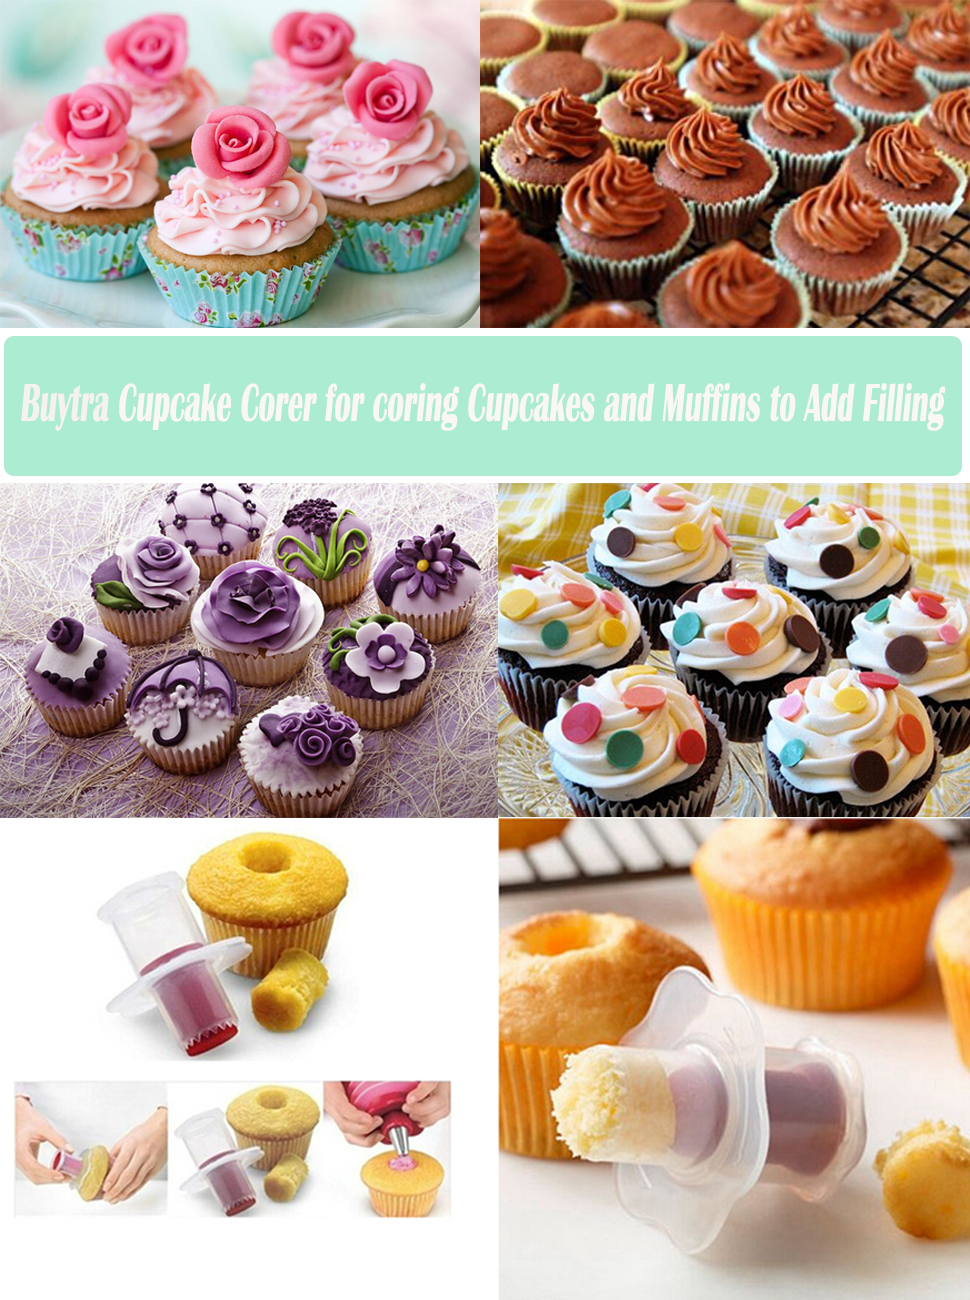 Amazoncom Buytra Cupcake Plunger Cutter Pastry Corer Decorating